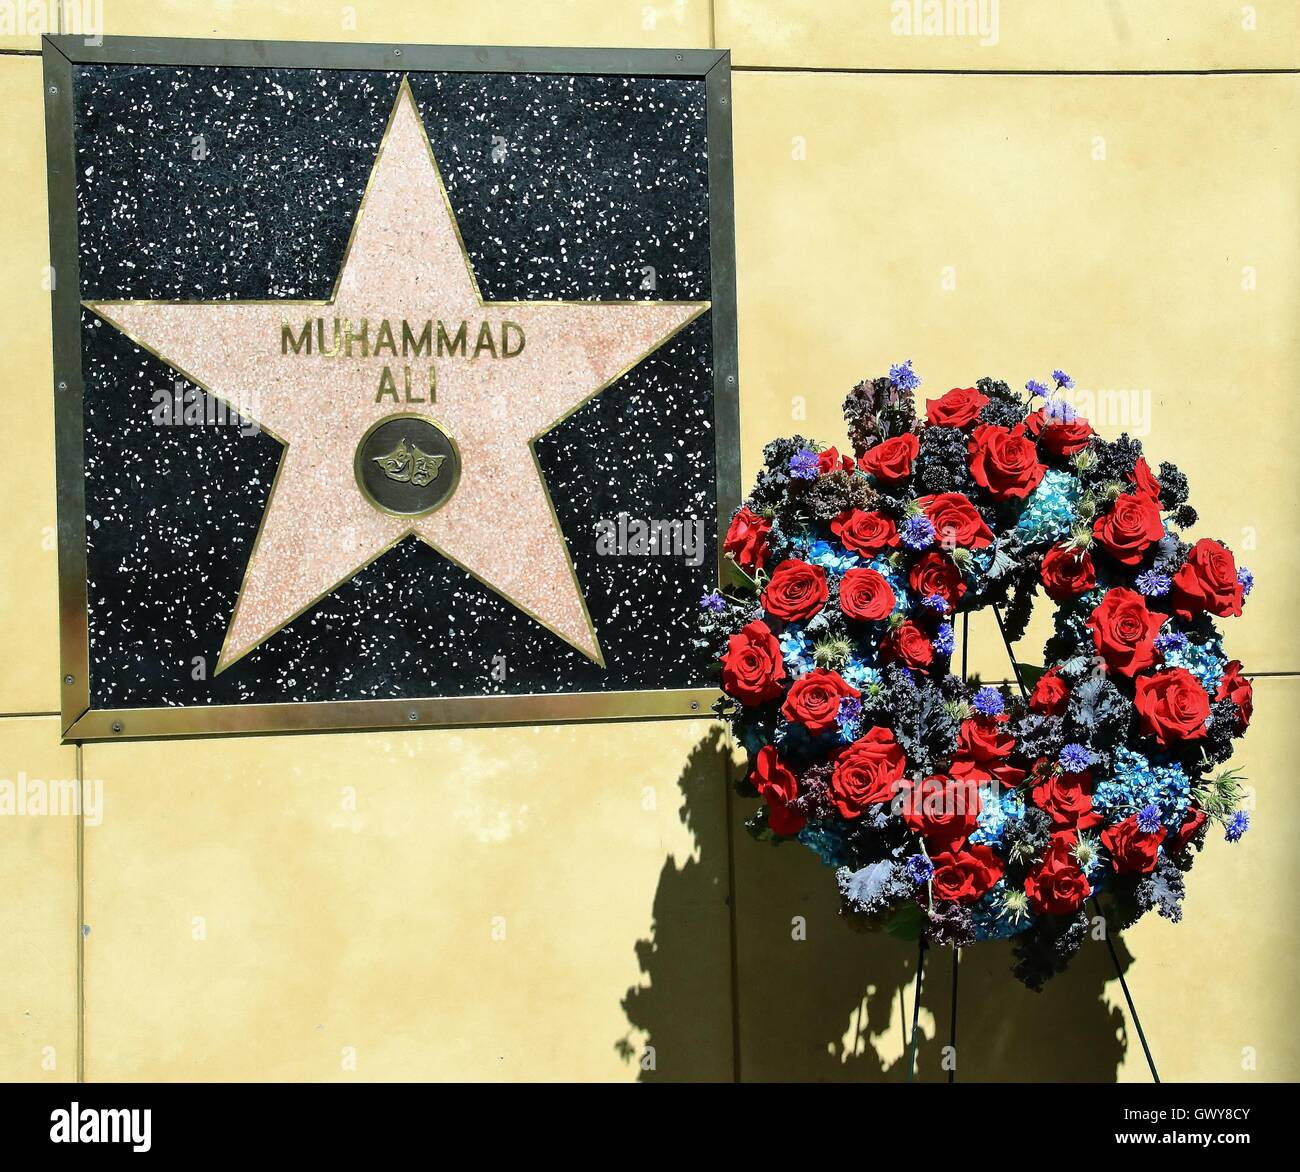 A flower tribute is left next to the Hollywood Walk of Fame star for Muhammad Ali who passed away on Friday night - Stock Image